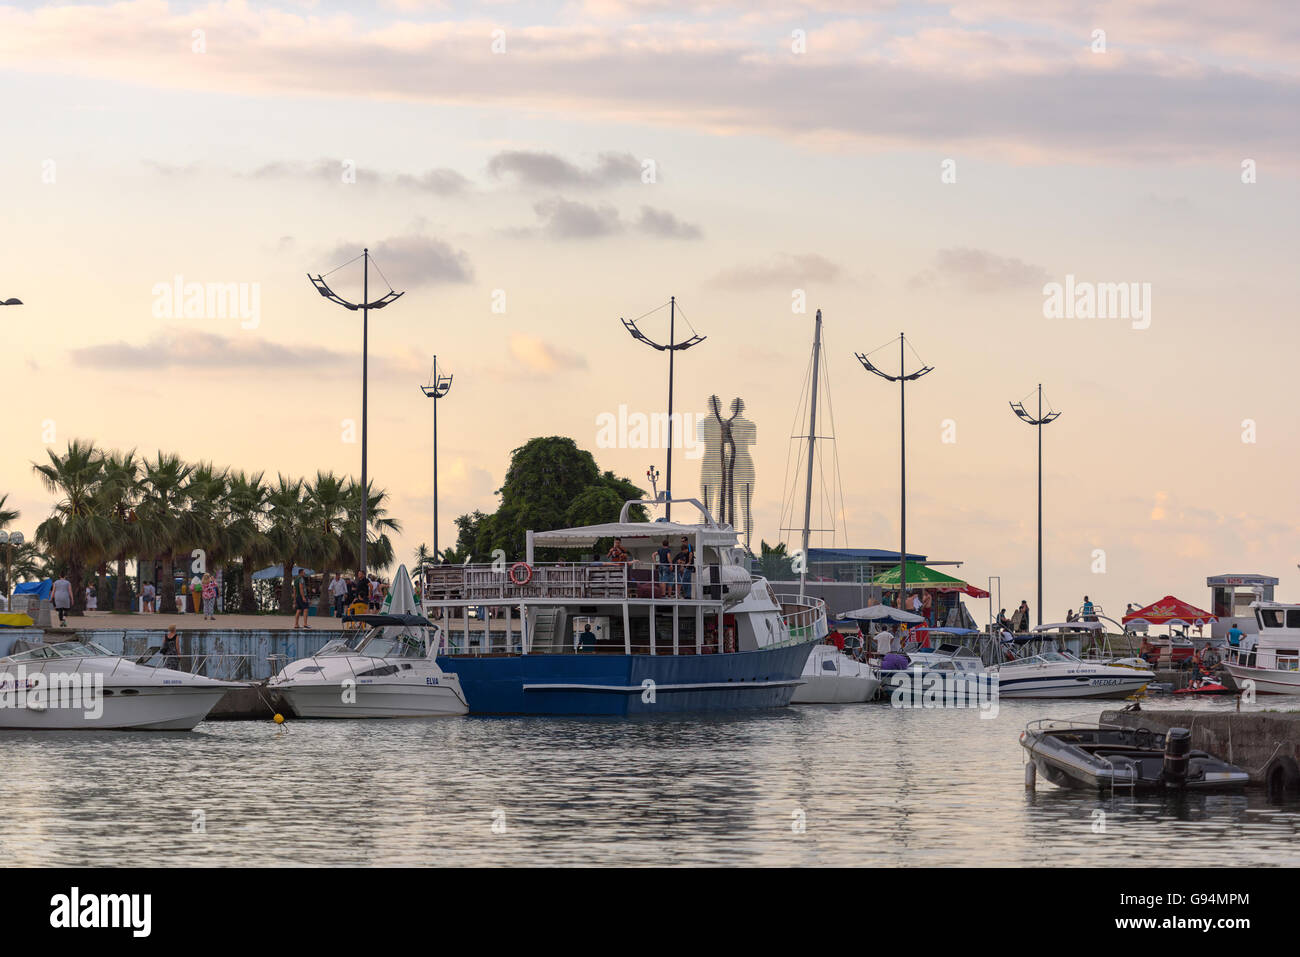 port, a view of the monument of Ali and Nino which is a symbol of love and friendship - Stock Image